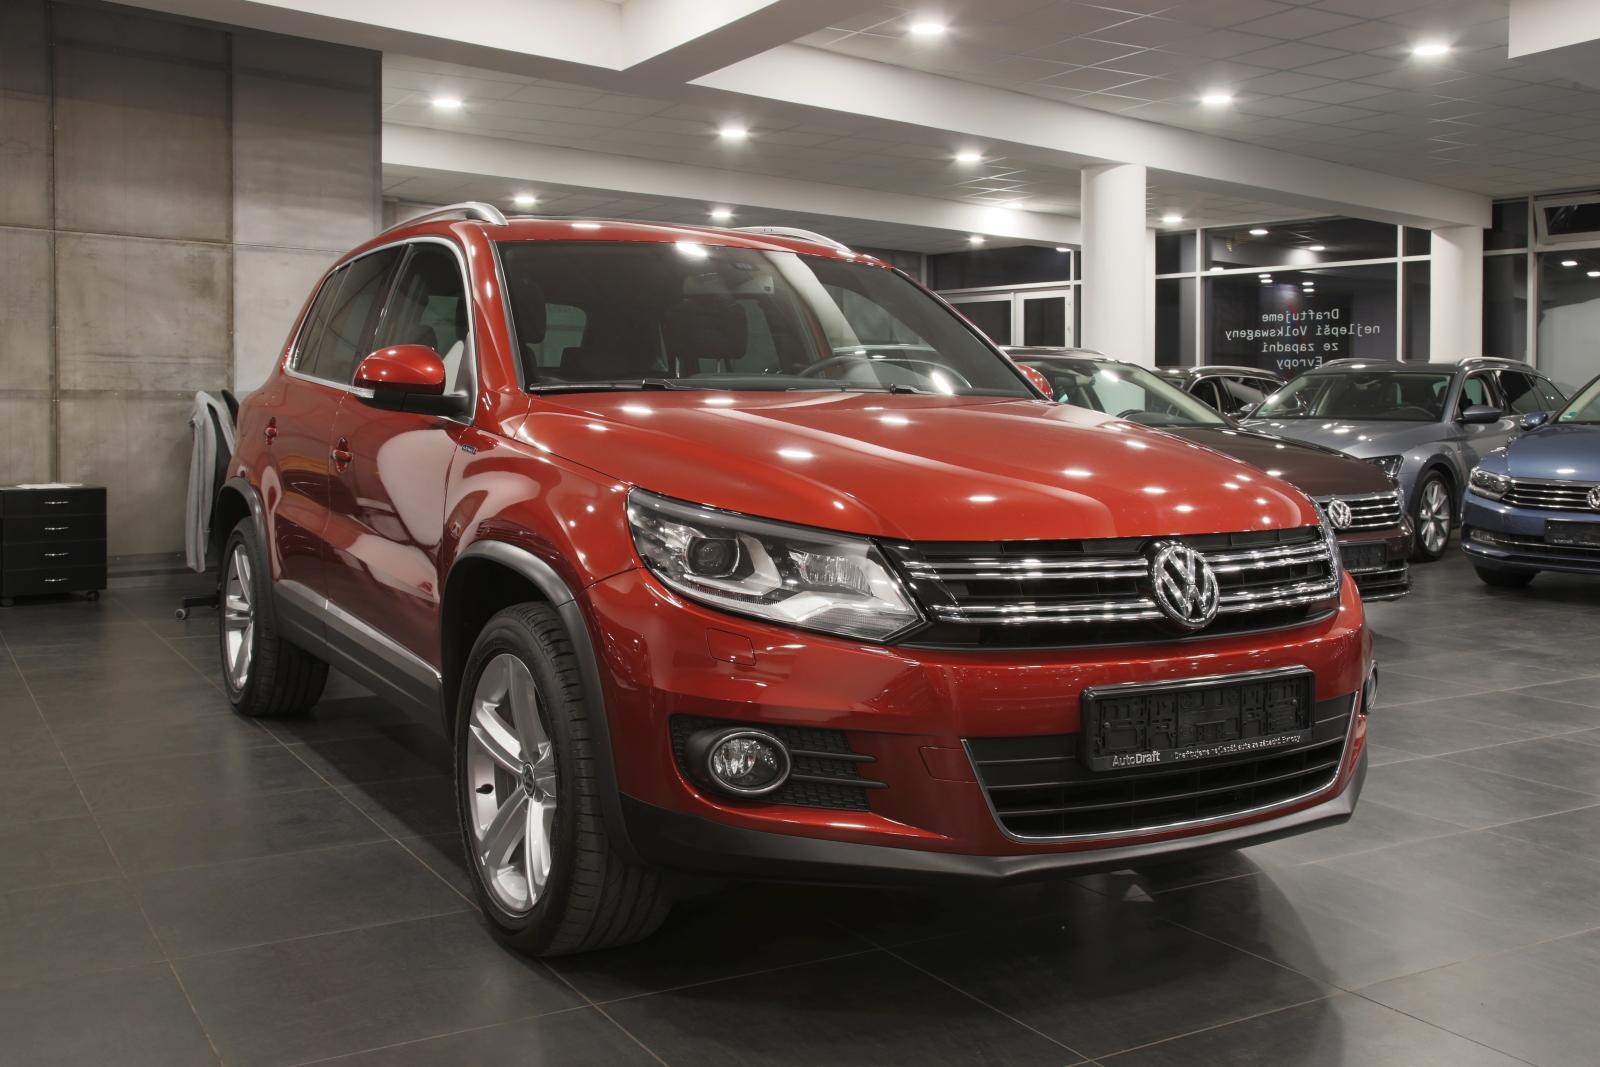 volkswagen tiguan lounge 2 0 tdi dsg 4motion 130 kw autodraft r s r o. Black Bedroom Furniture Sets. Home Design Ideas